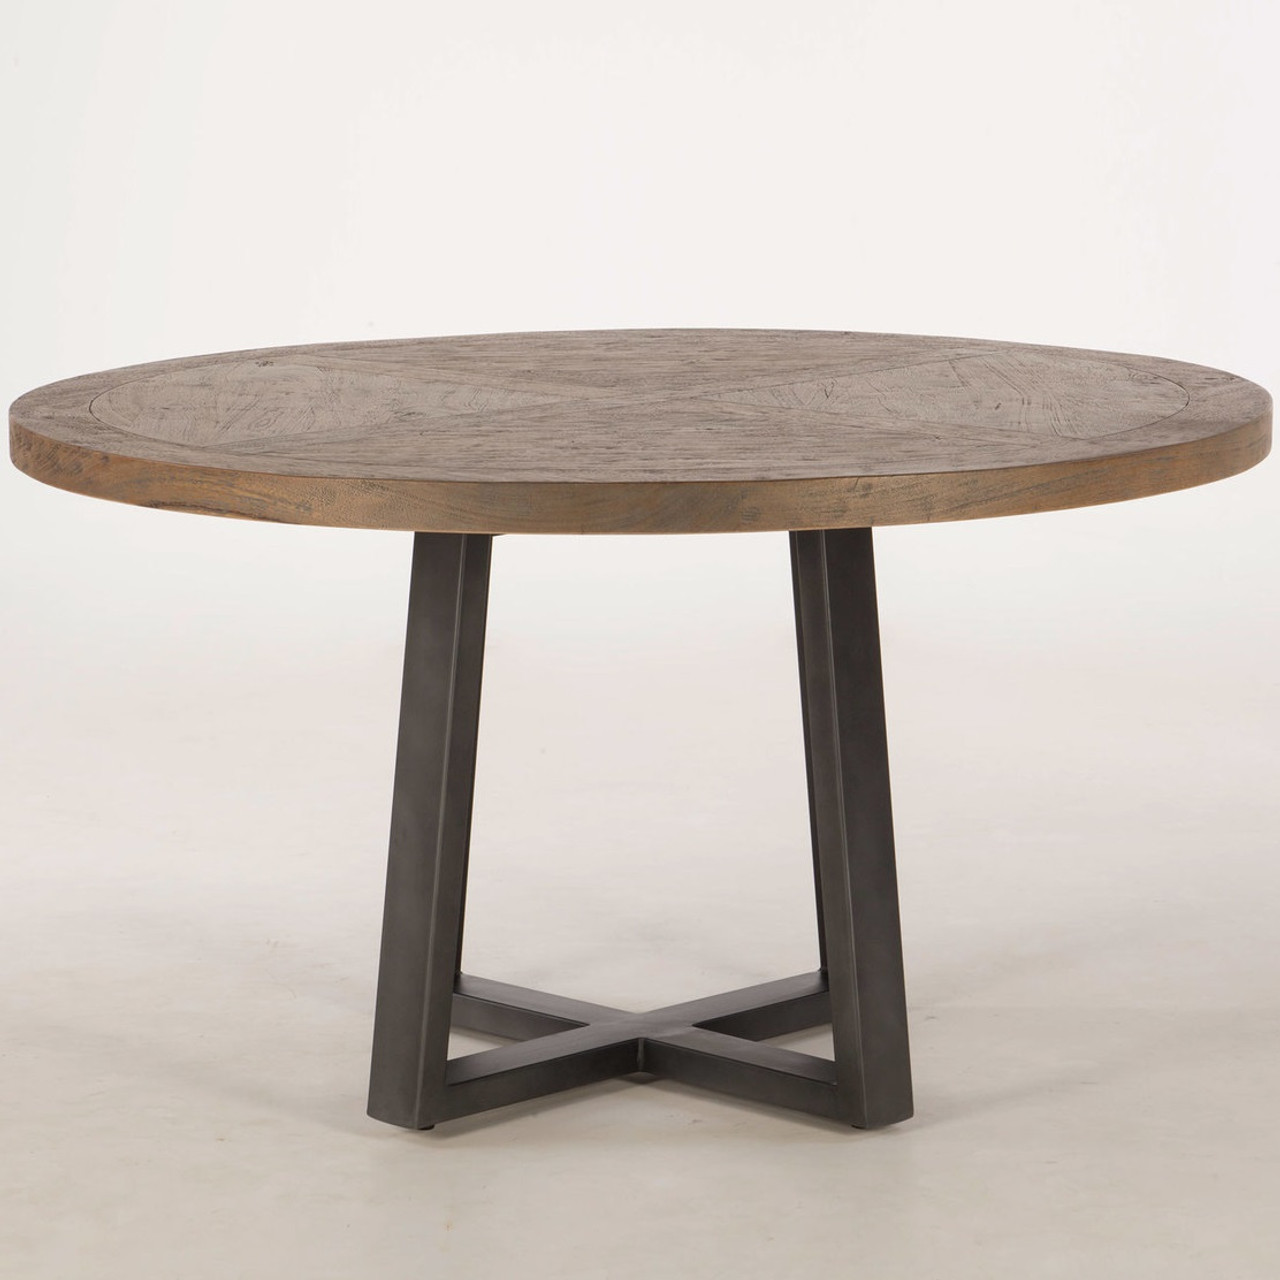 54 round dining table Long Beach Wood and Iron Round Dining Table 54